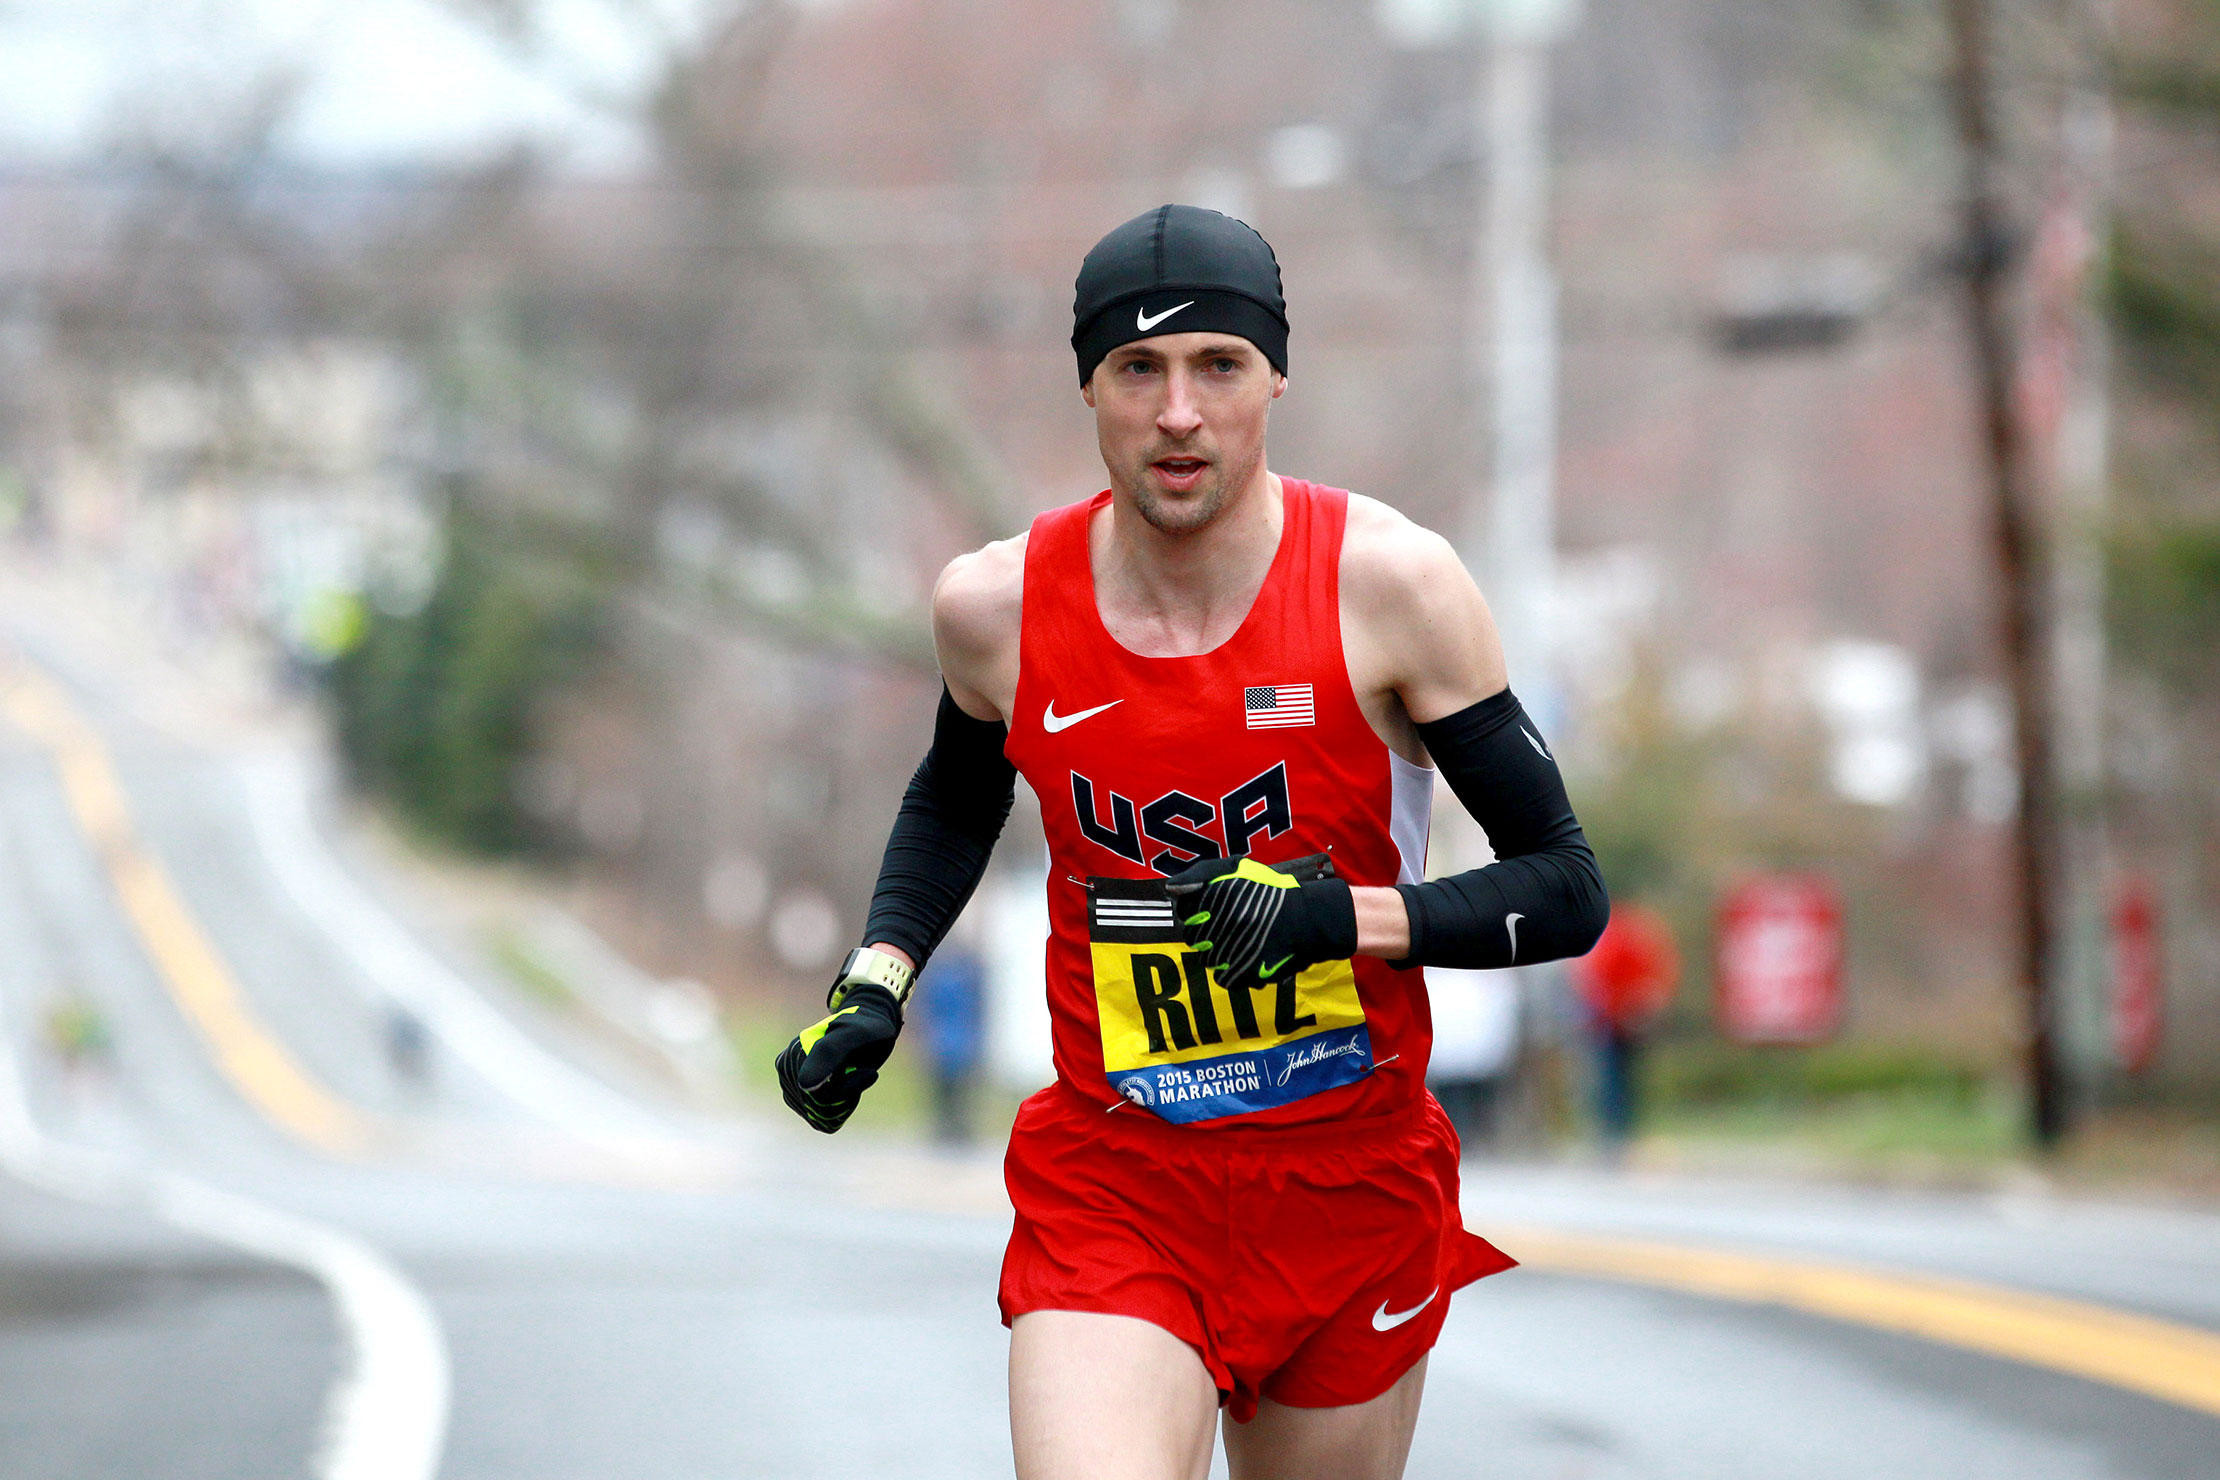 Ritzenhein, in preparation for his second appearance at the Boston Marathon